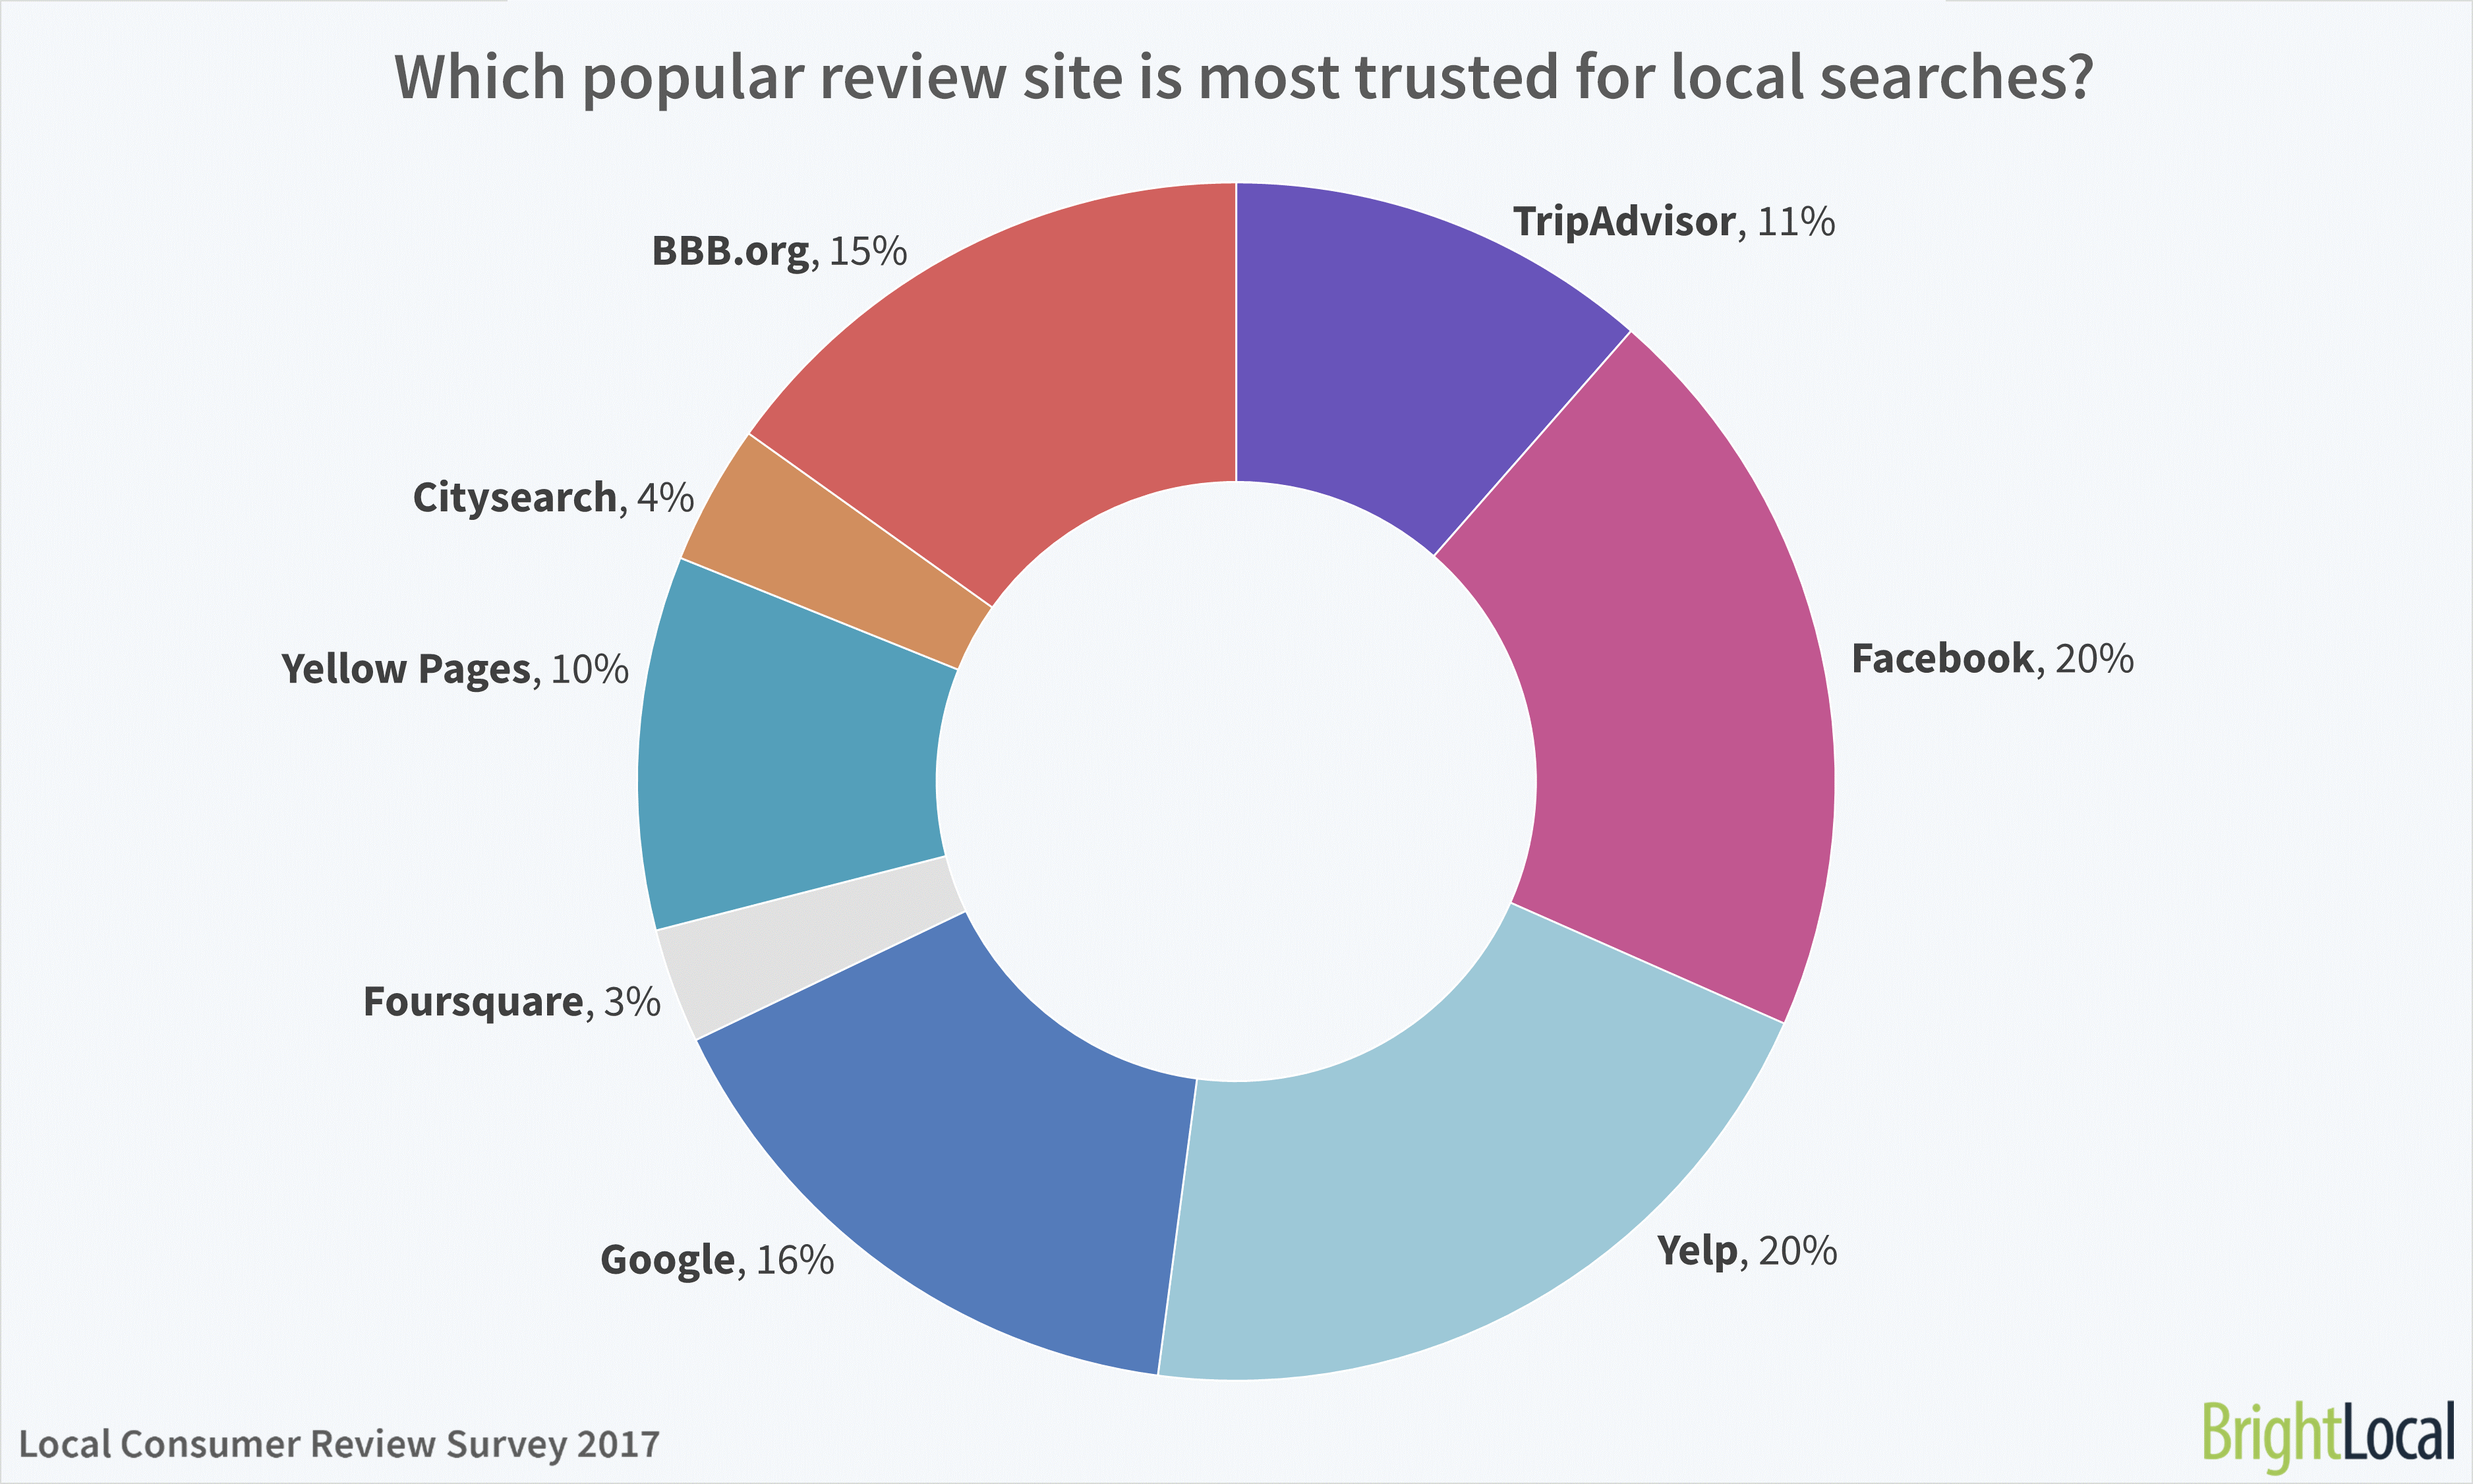 The most trusted review sites for local search